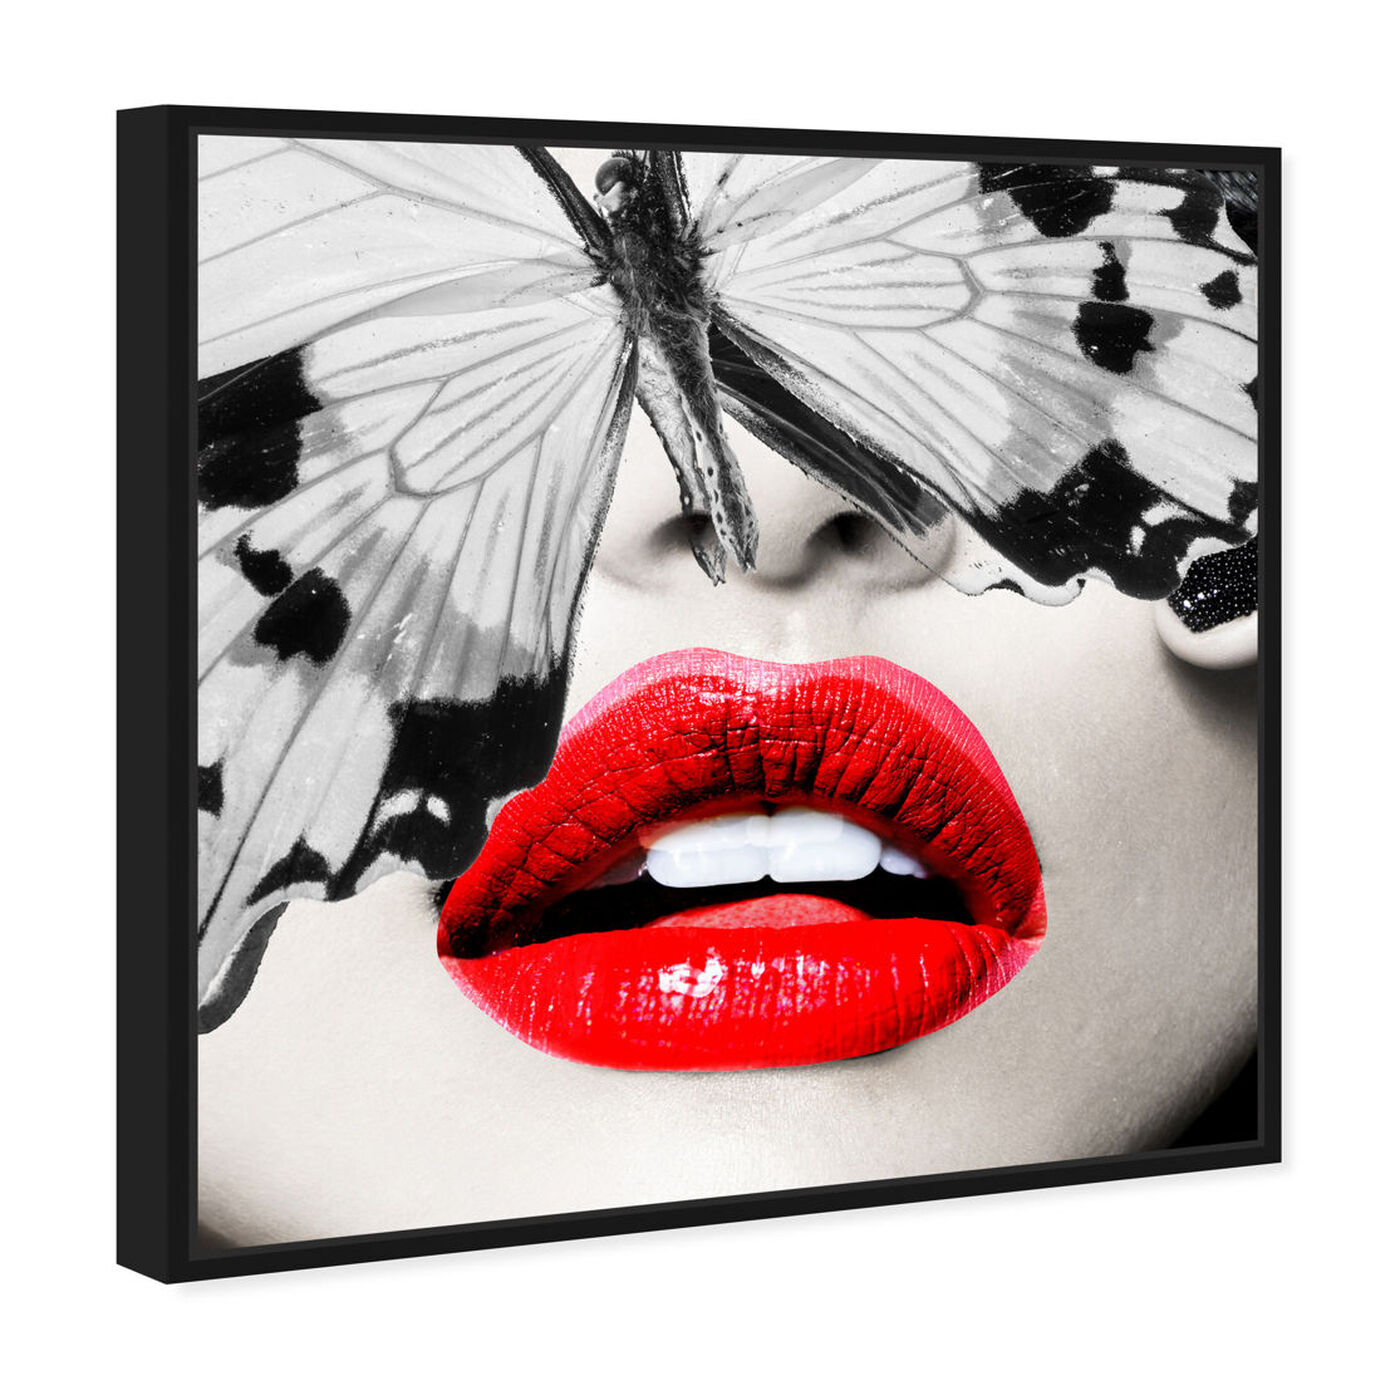 Angled view of Butterfly Lips featuring fashion and glam and lips art.